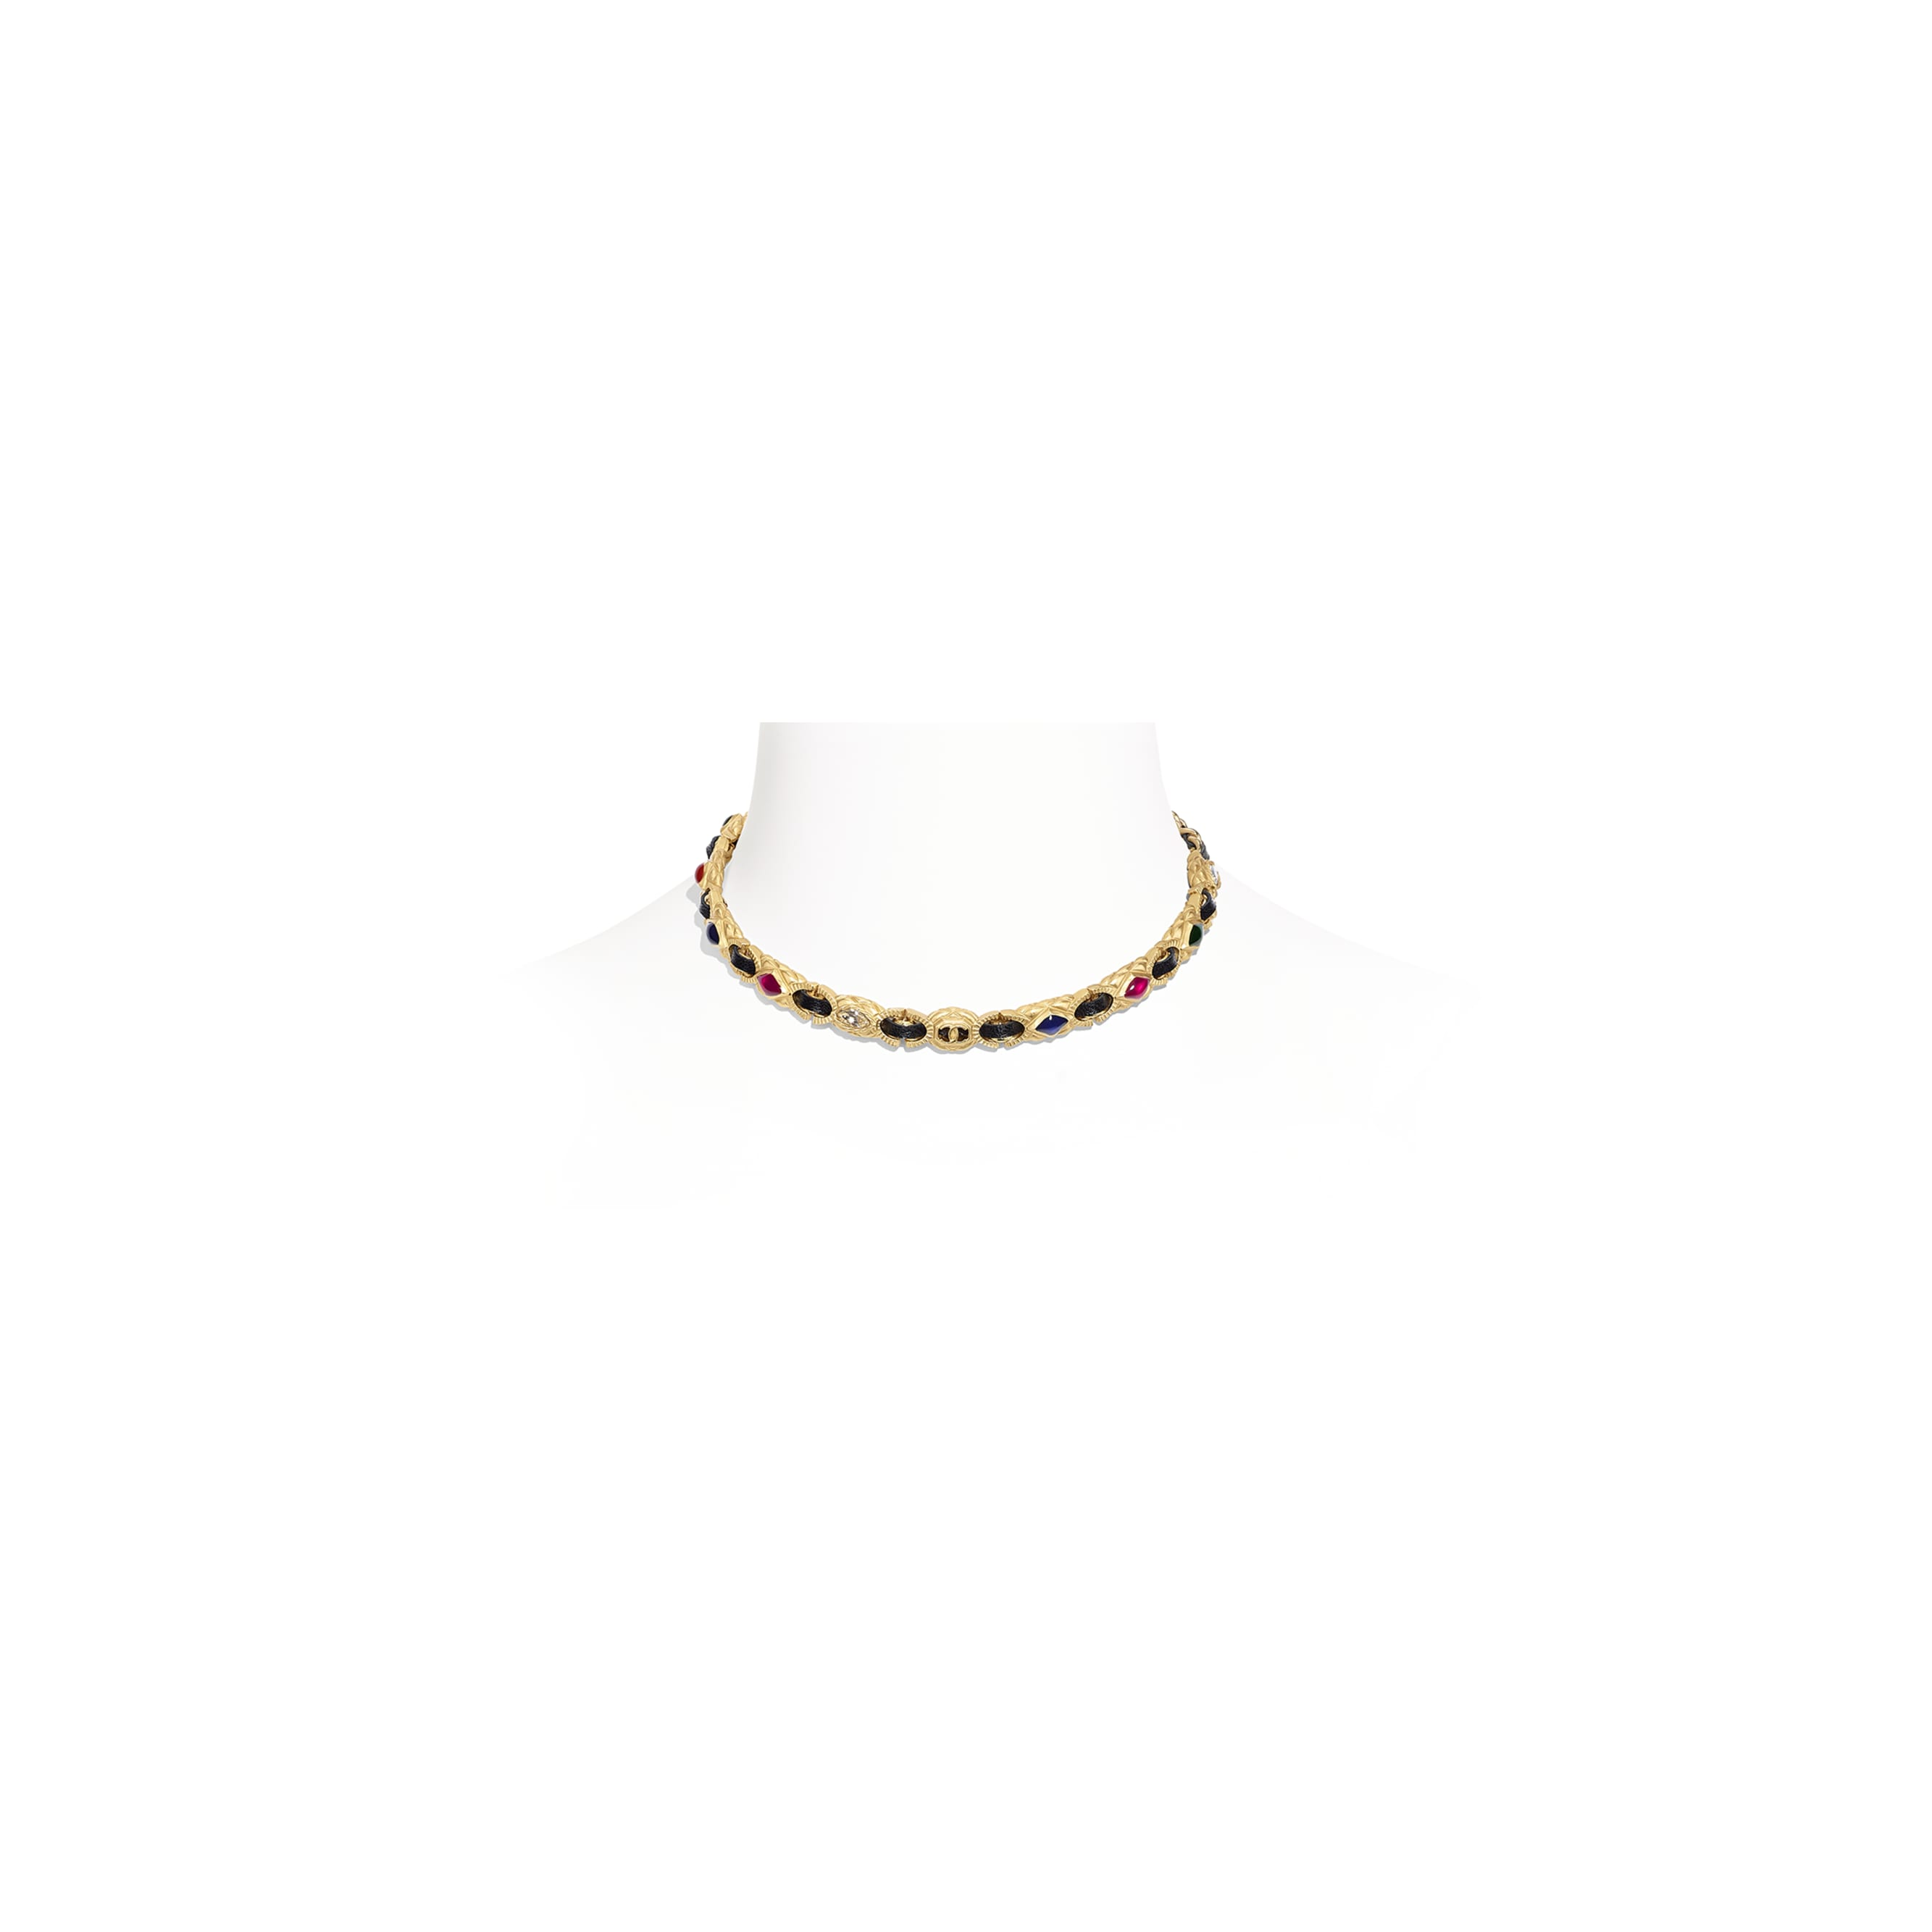 Choker - Gold, Black, Crystal & Multicolor - Metal, lambskin, diamanté & resin - Default view - see standard sized version